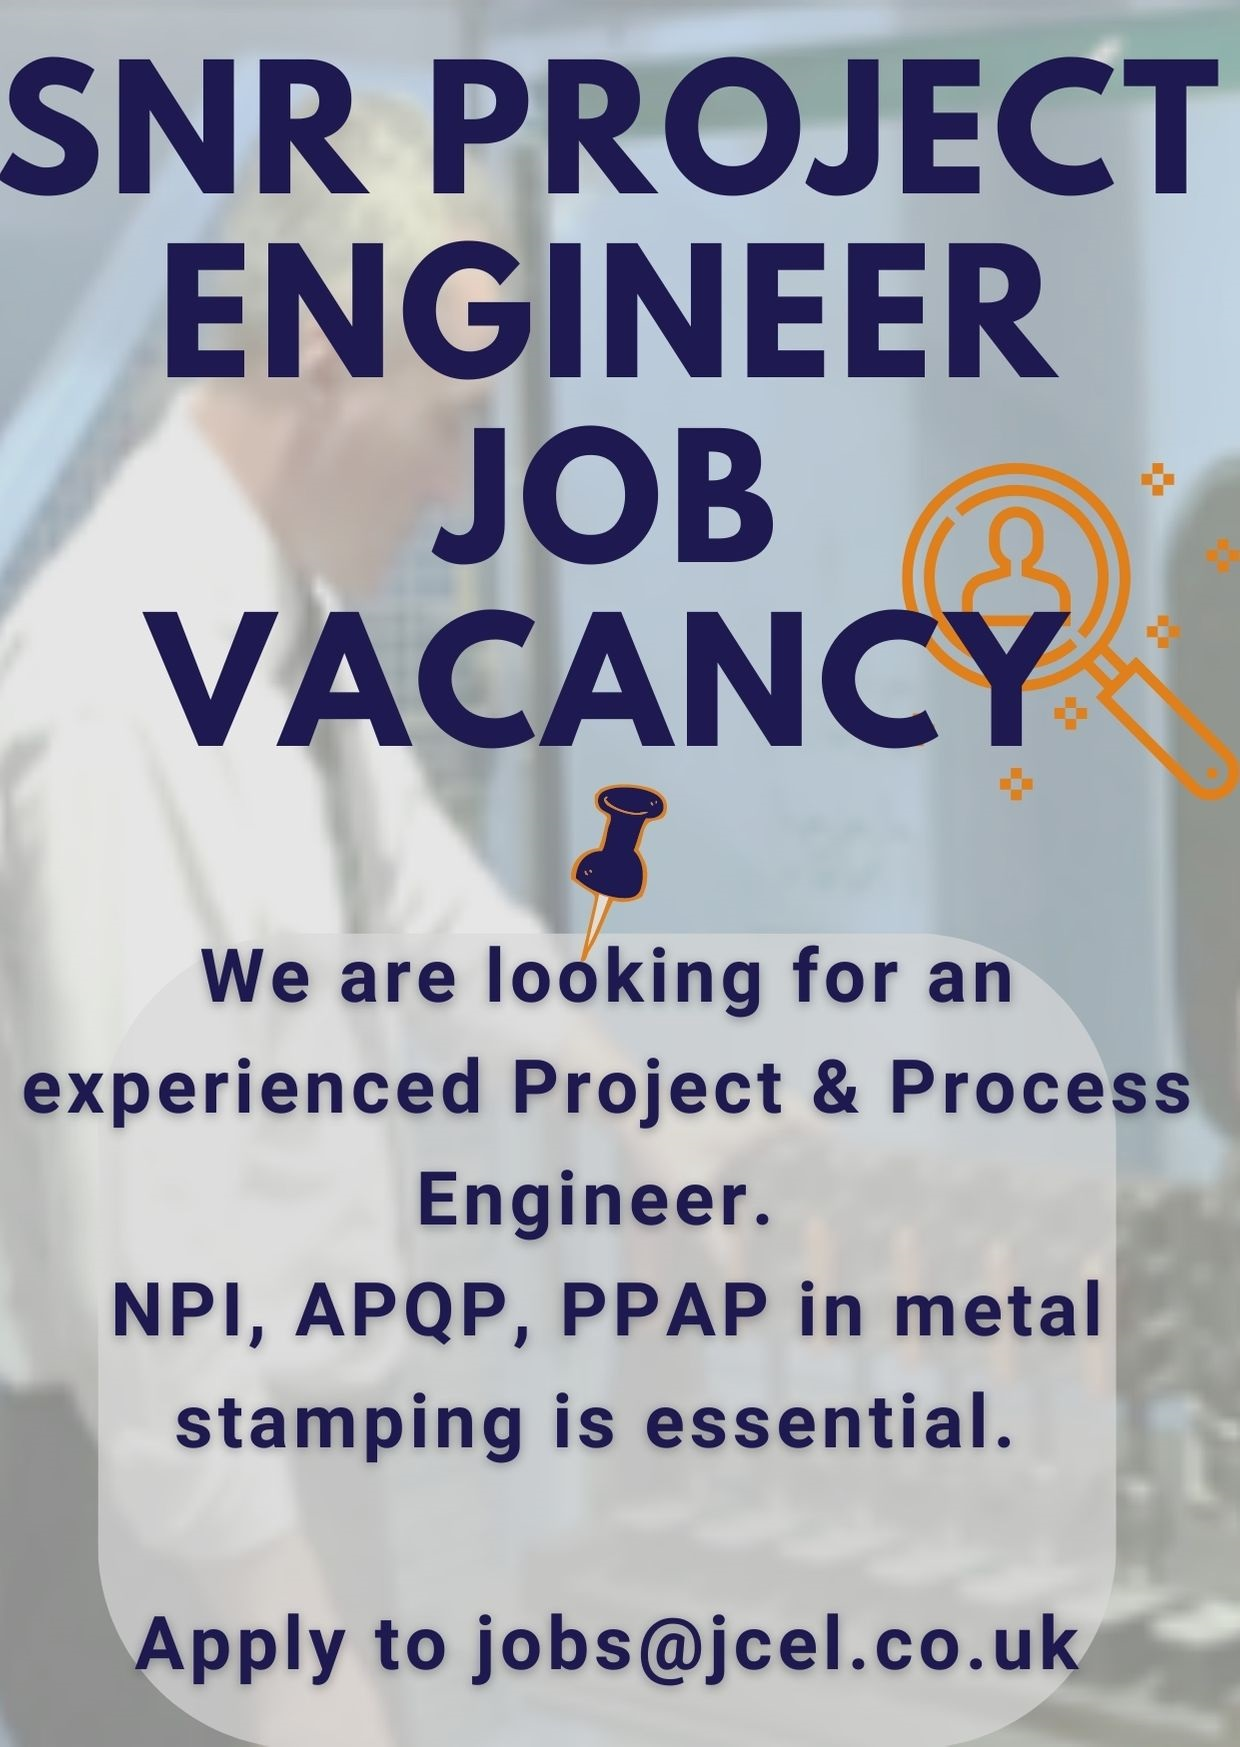 Jenks & Cattell Project Engineer Job Vacancy